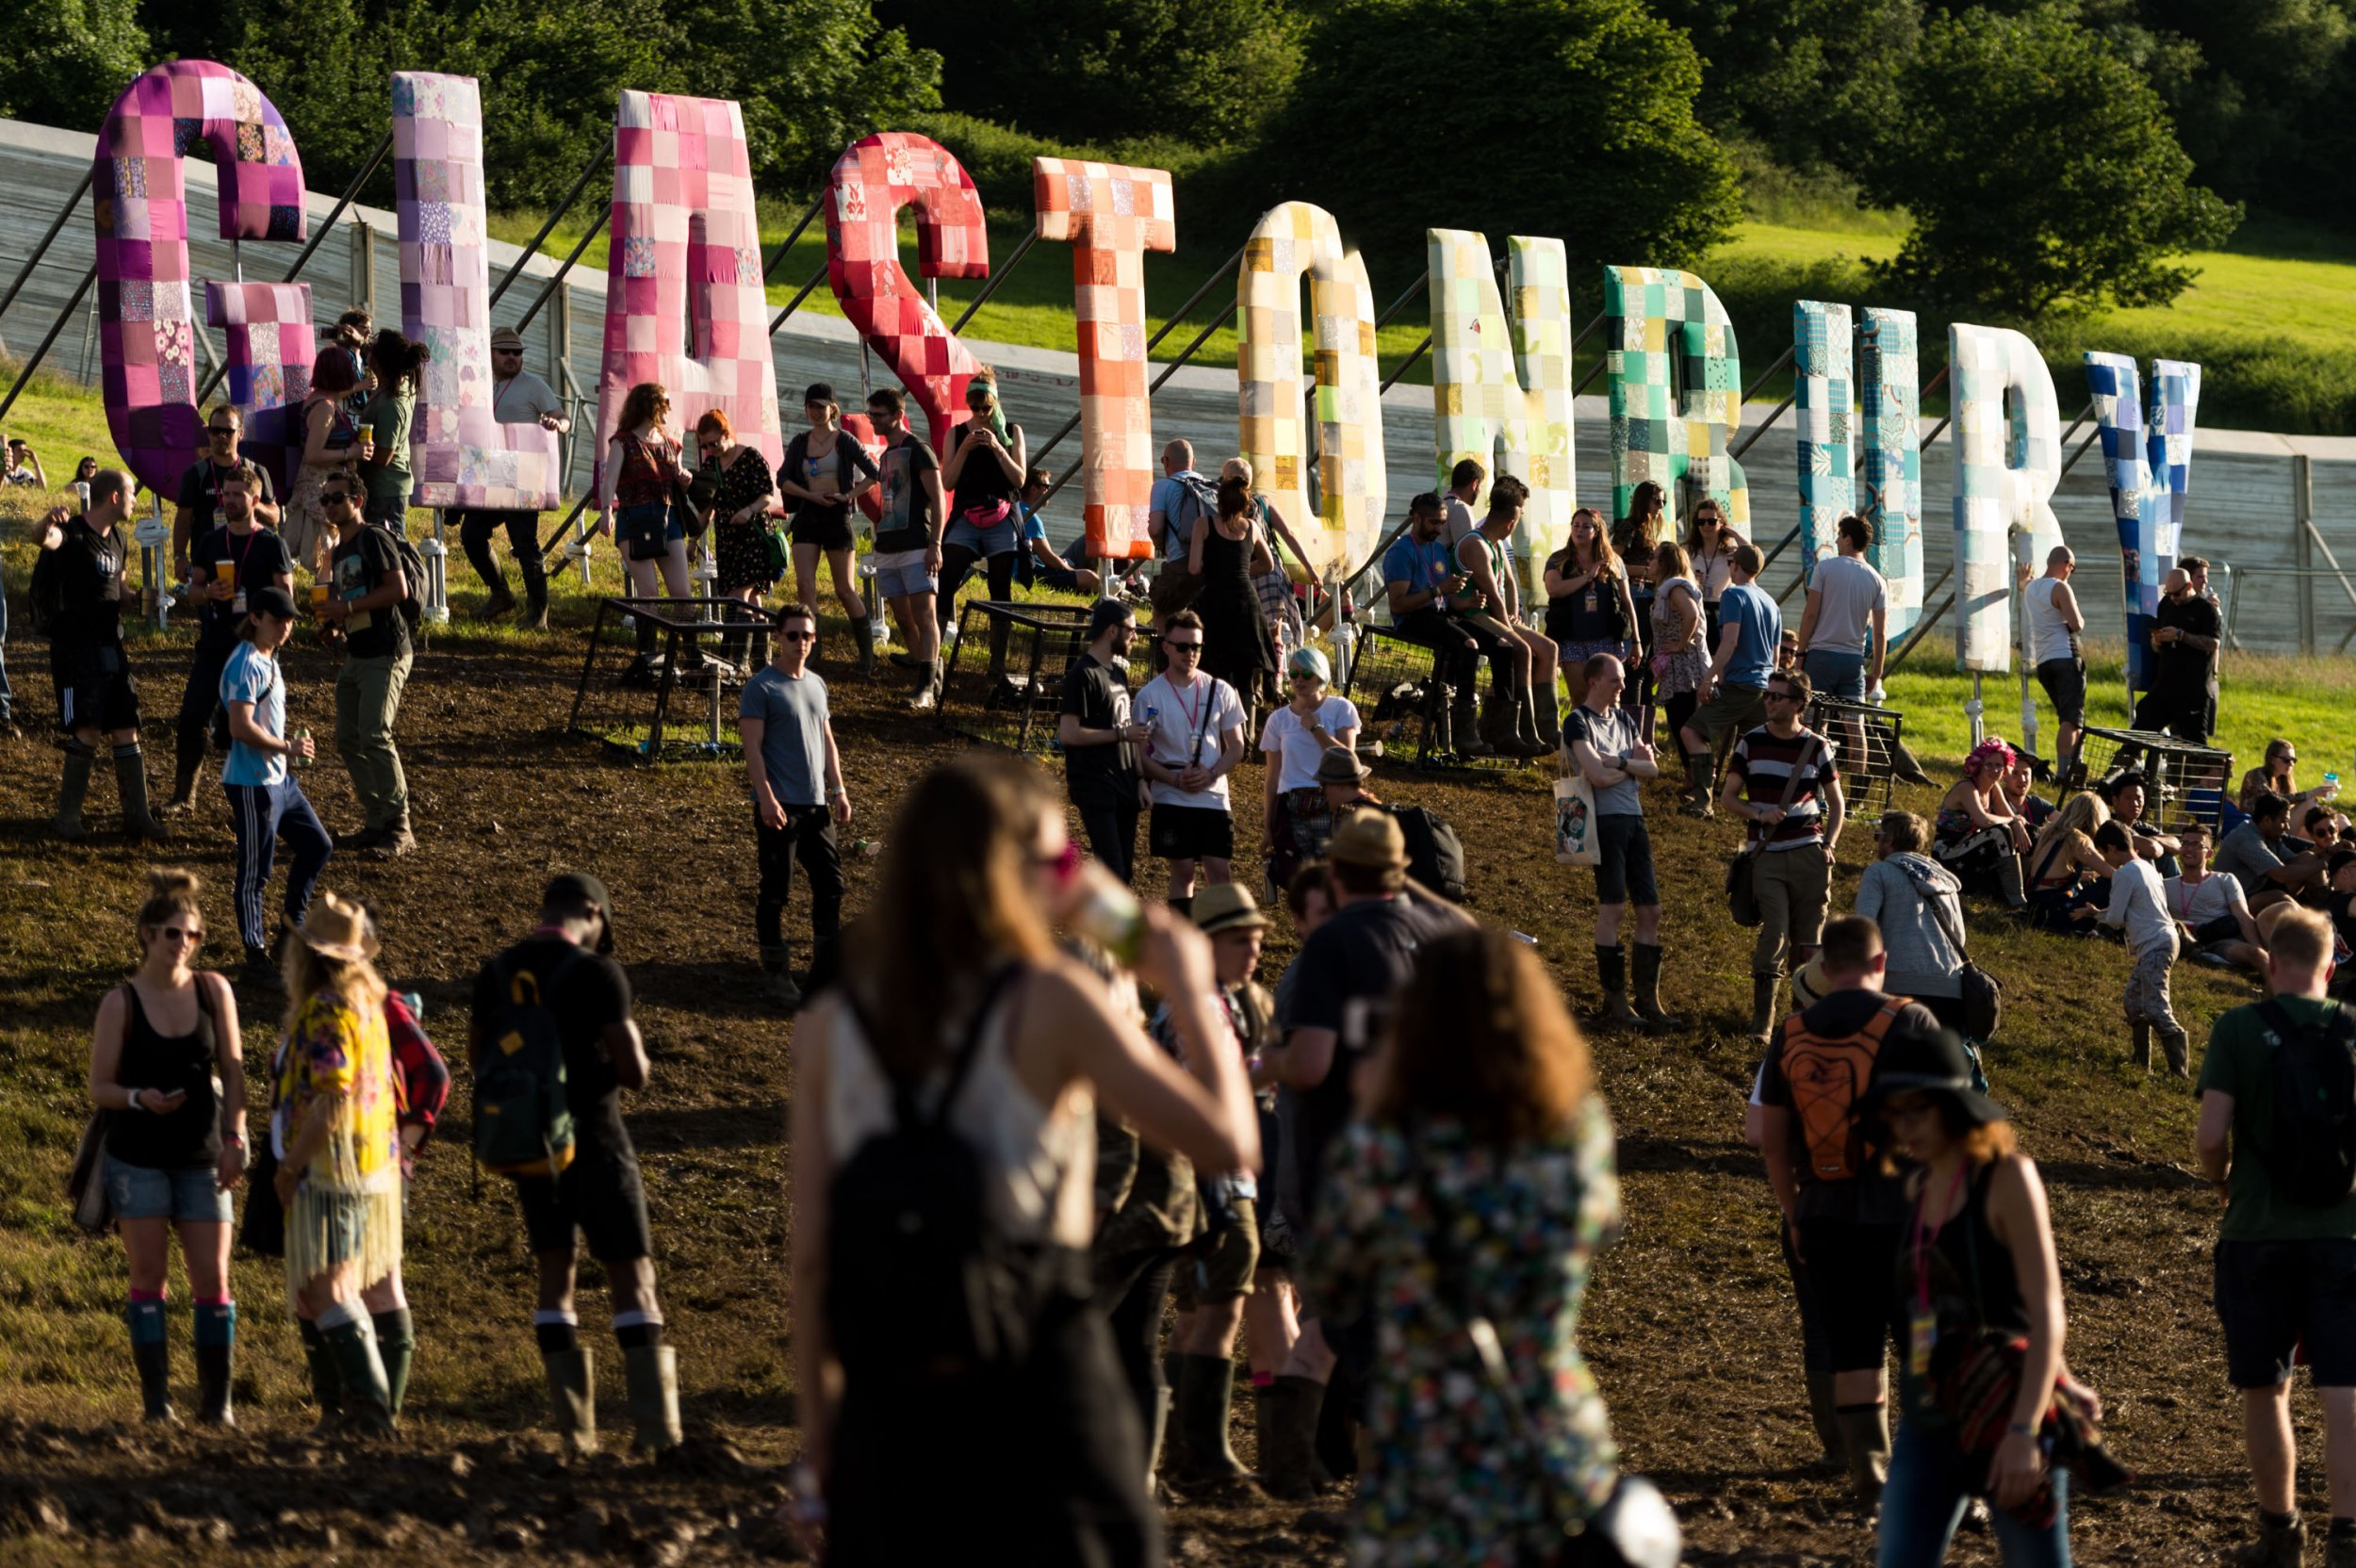 Glastonbury reacts to Brexit